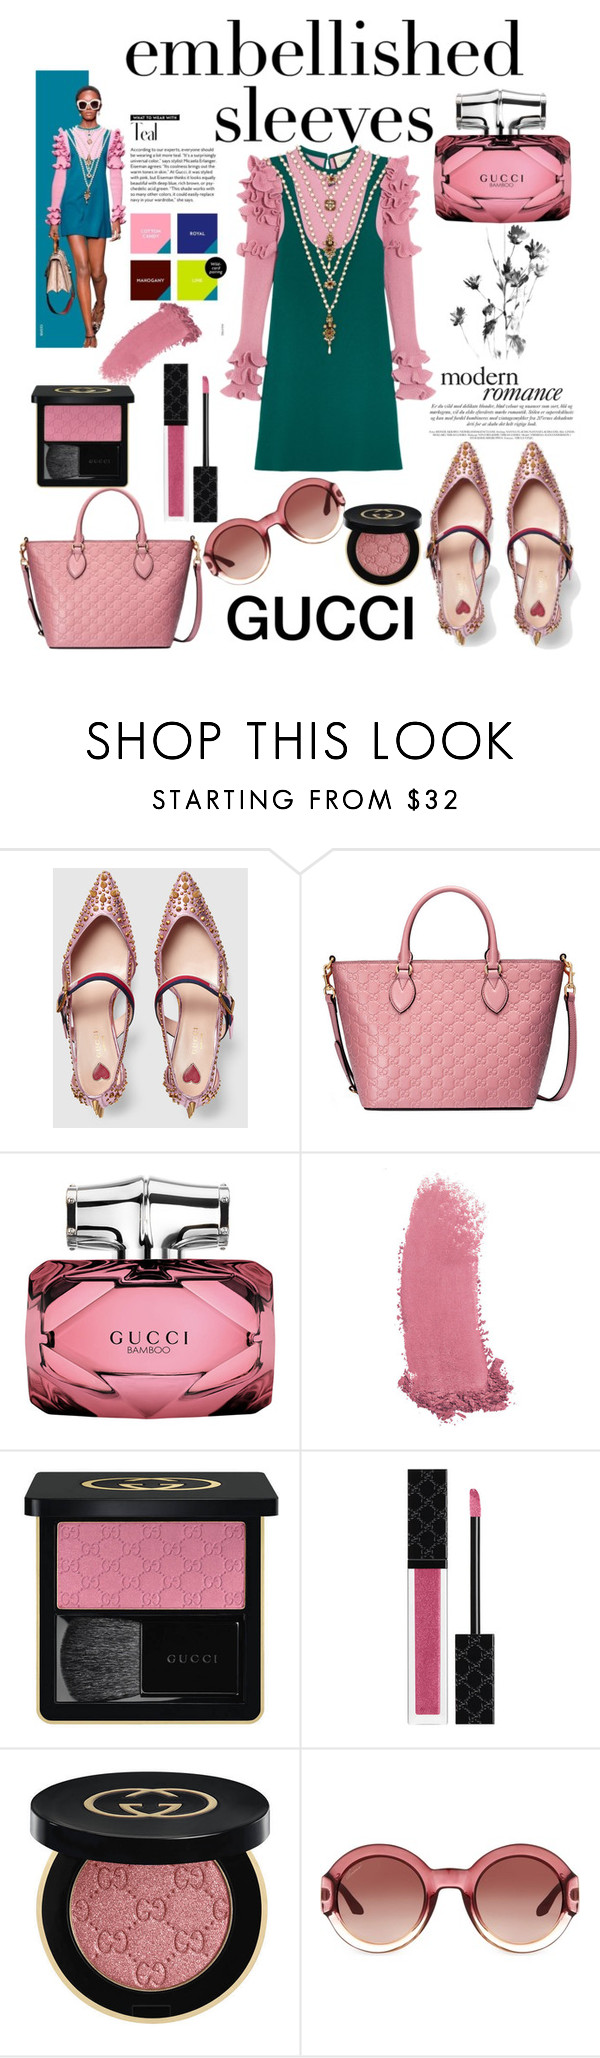 """""""GUCCI: Embellished Sleeves"""" by mandimwpink ❤ liked on Polyvore featuring Gucci, gucci and embellishedsleeves"""